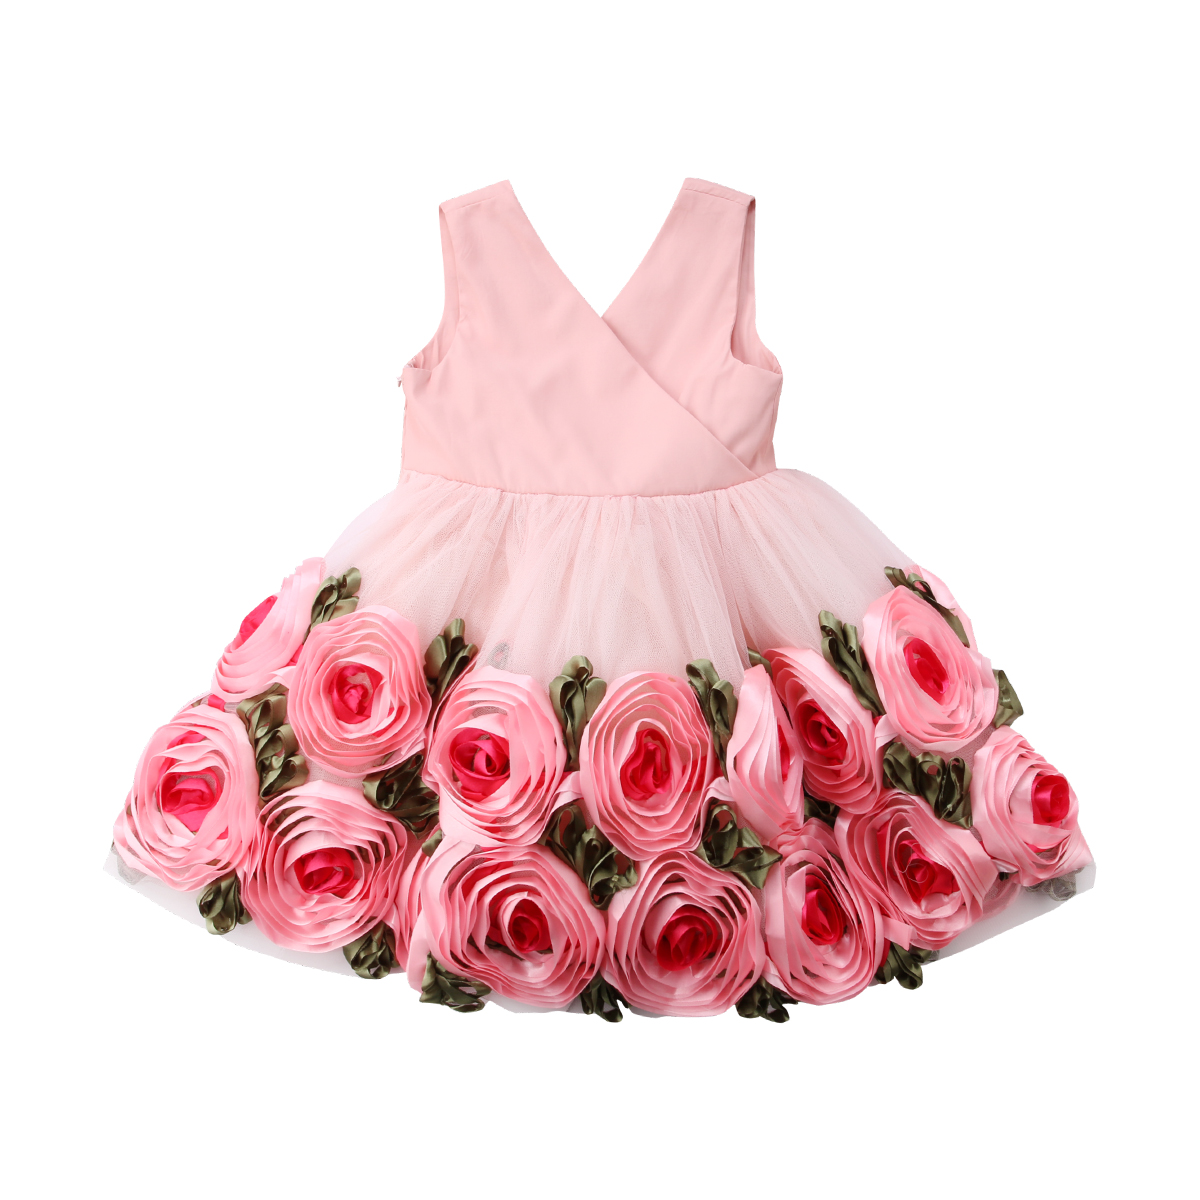 Flower Dress For Girl 3D Rose Party Pageant Dress 2018 New Cute Princess Kids Baby Sleeveless V neck Dresses Outfits Costume cute summer dress for girls new fashion kid baby girl sleeveless rose flower printed dresses striped casual party dress vestidos